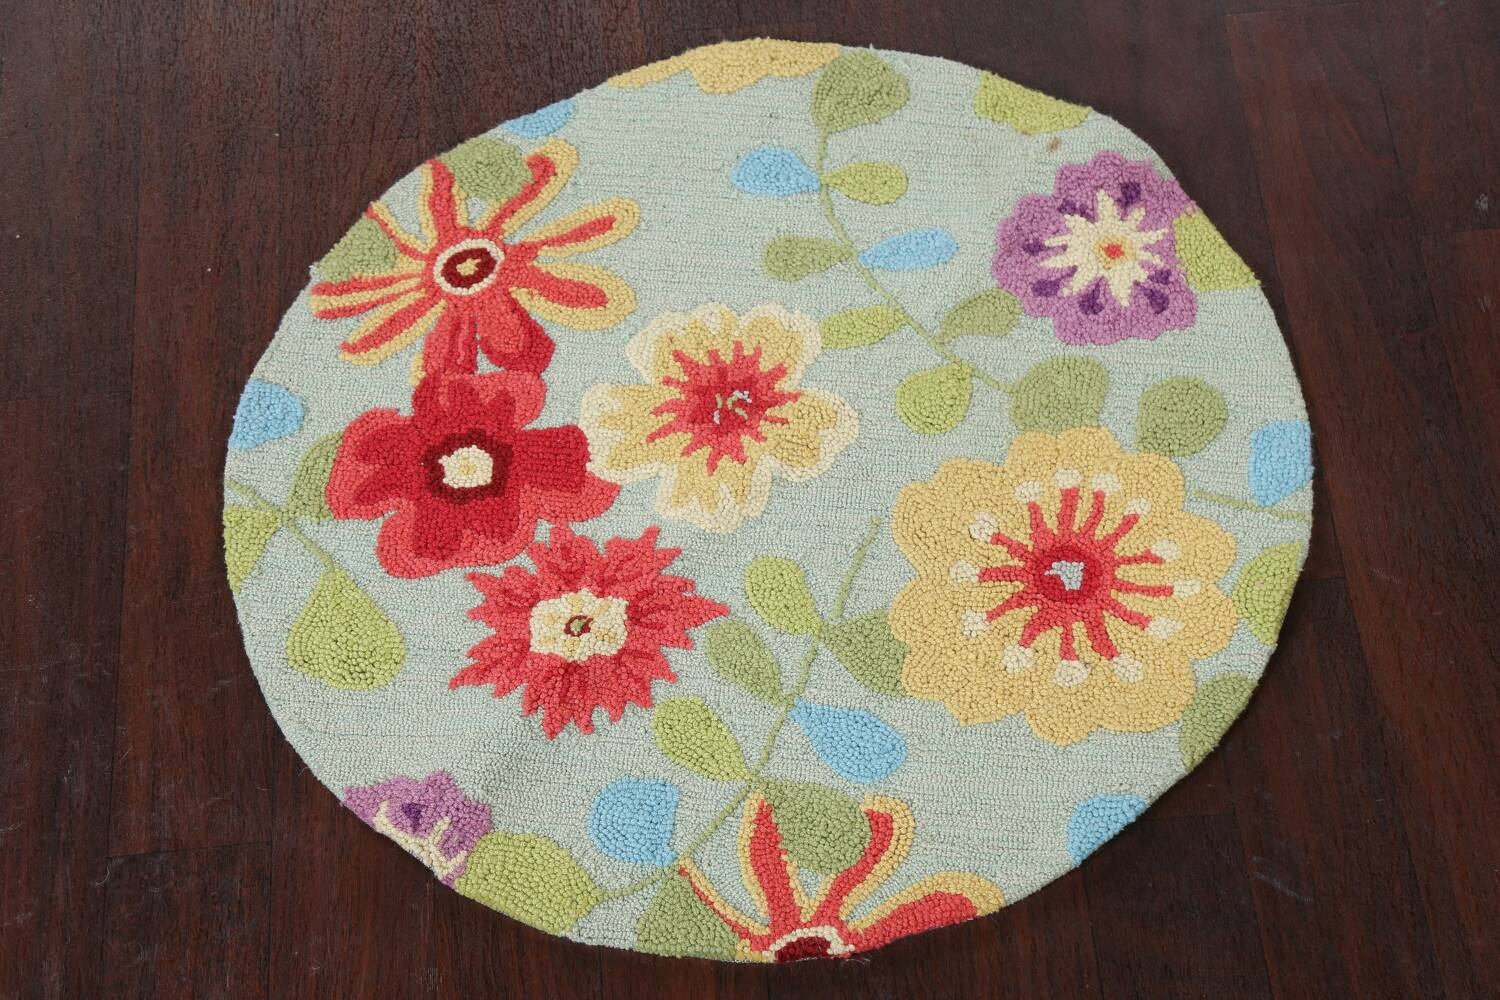 Contemporary Abstract Round Rug 3x3 image 14